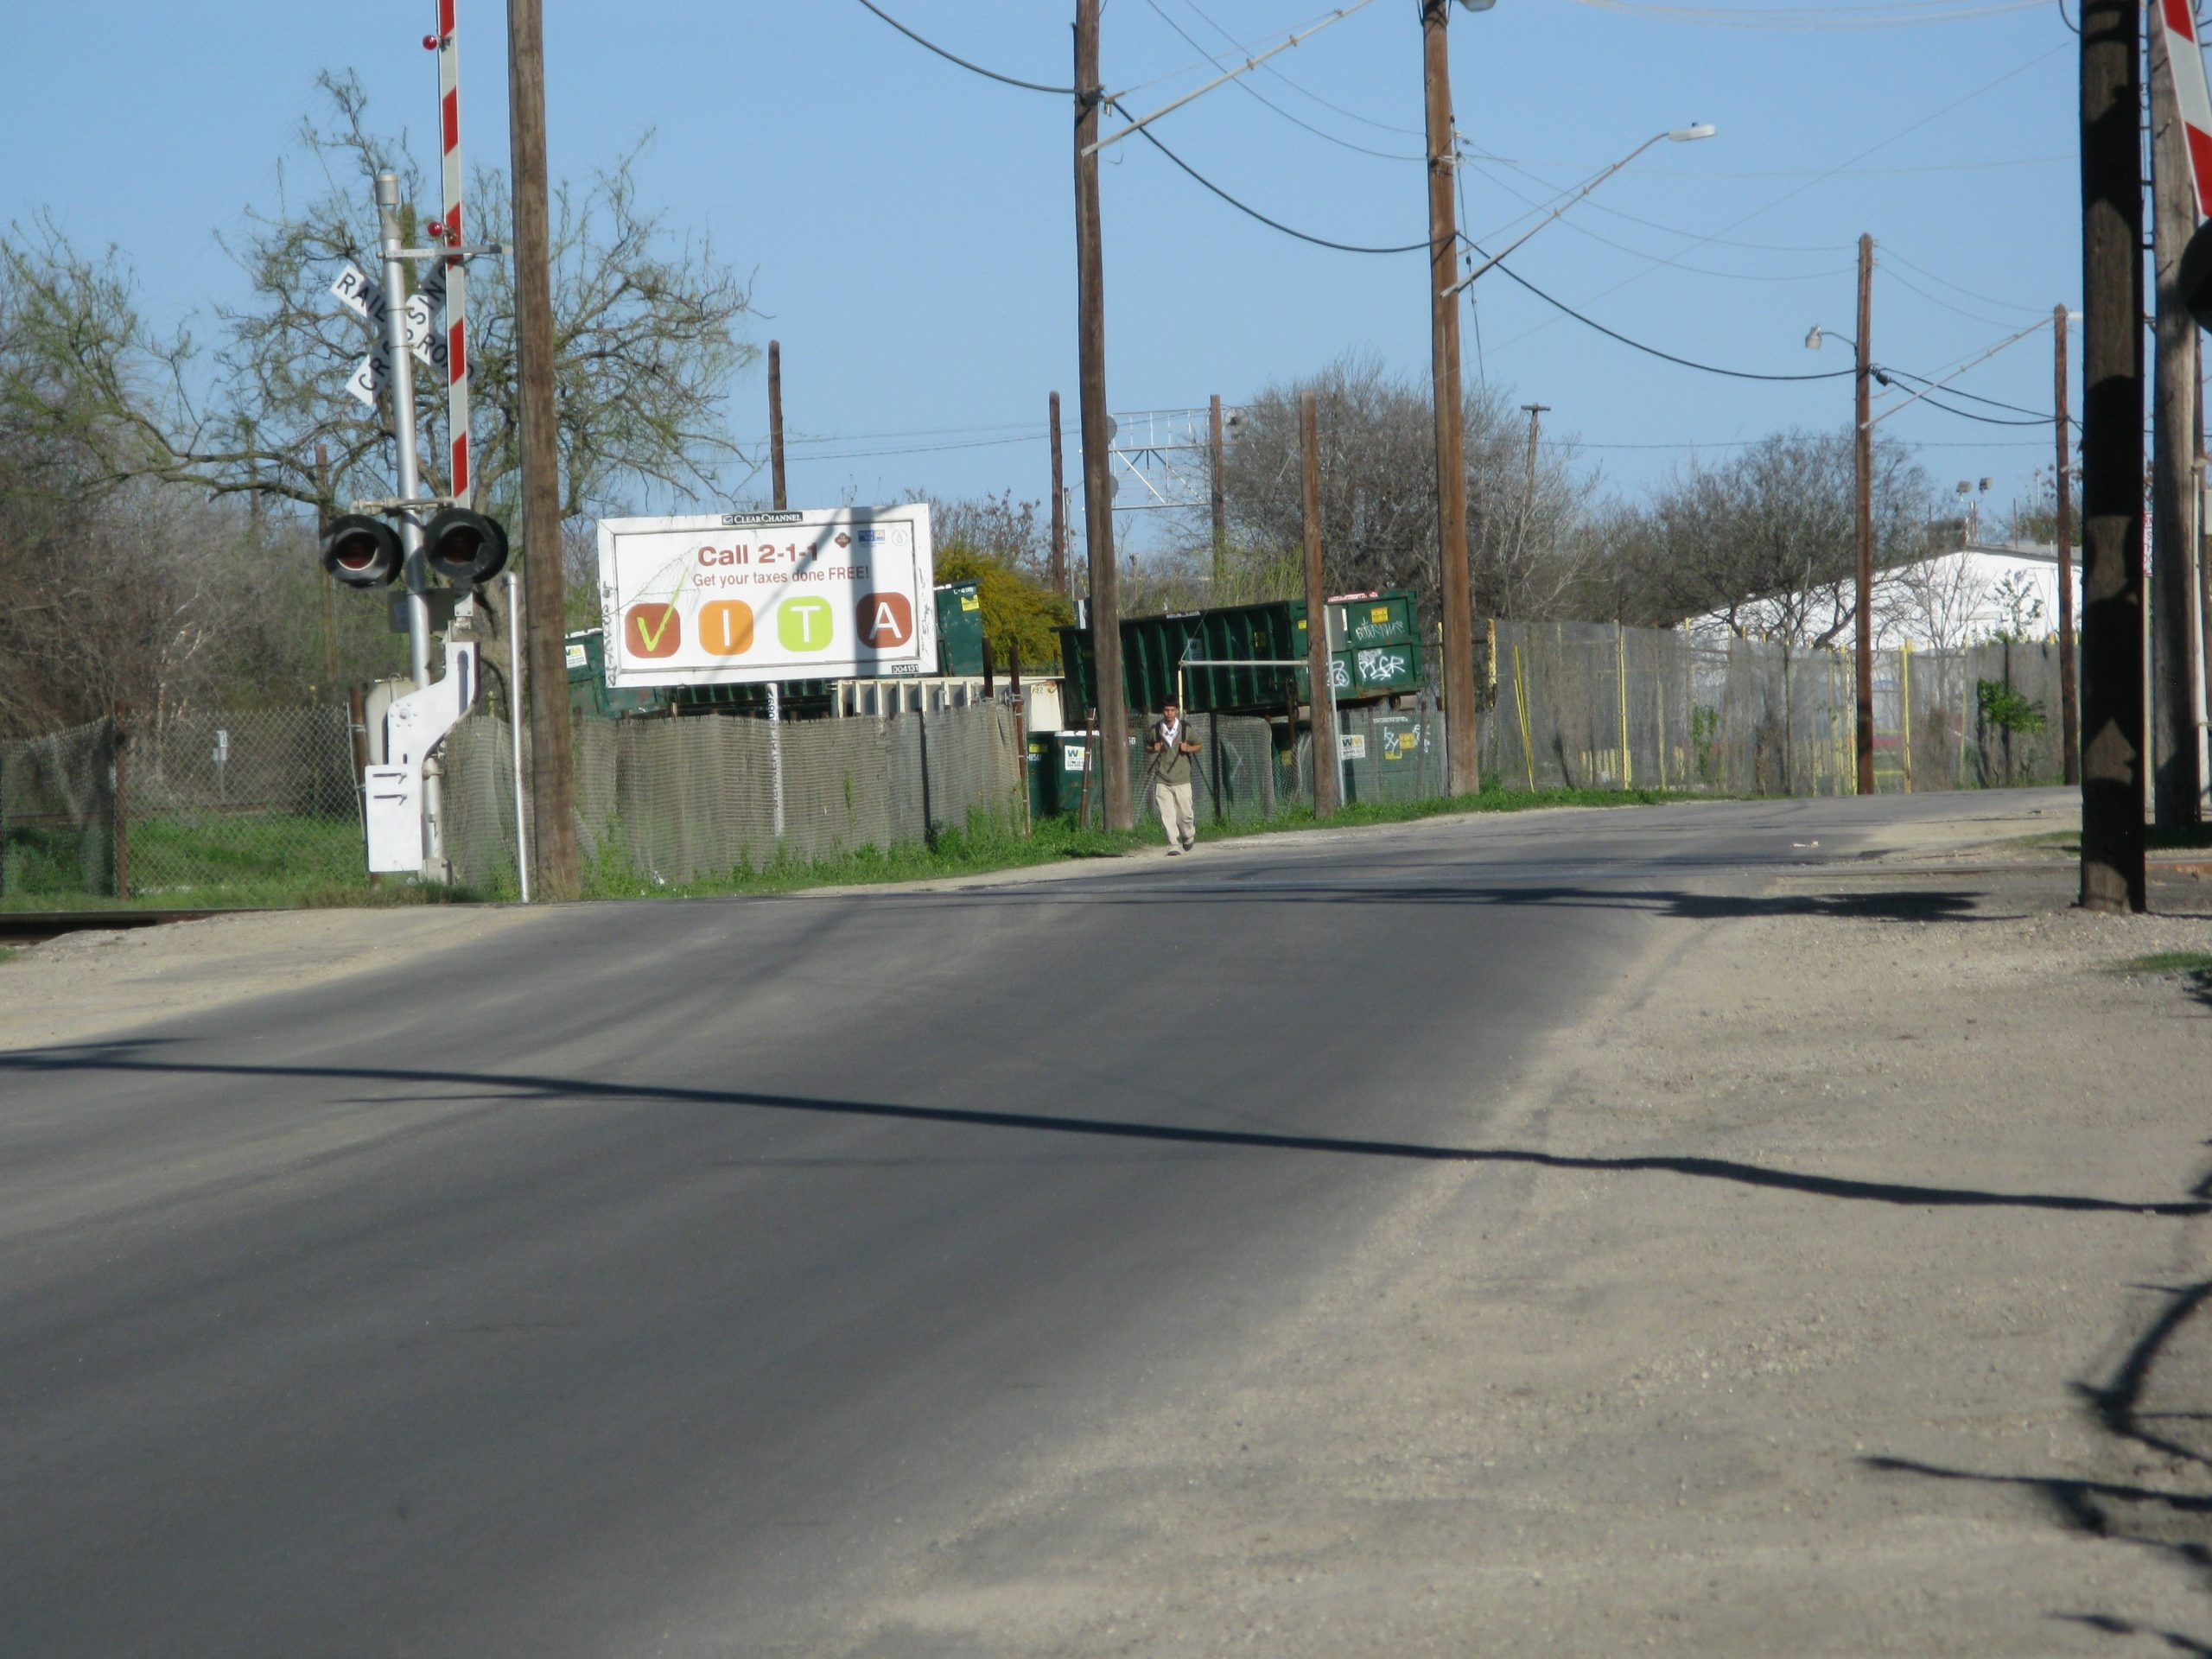 The east-facing street view of Lone Star Boulevard on the way to Mission Reach.